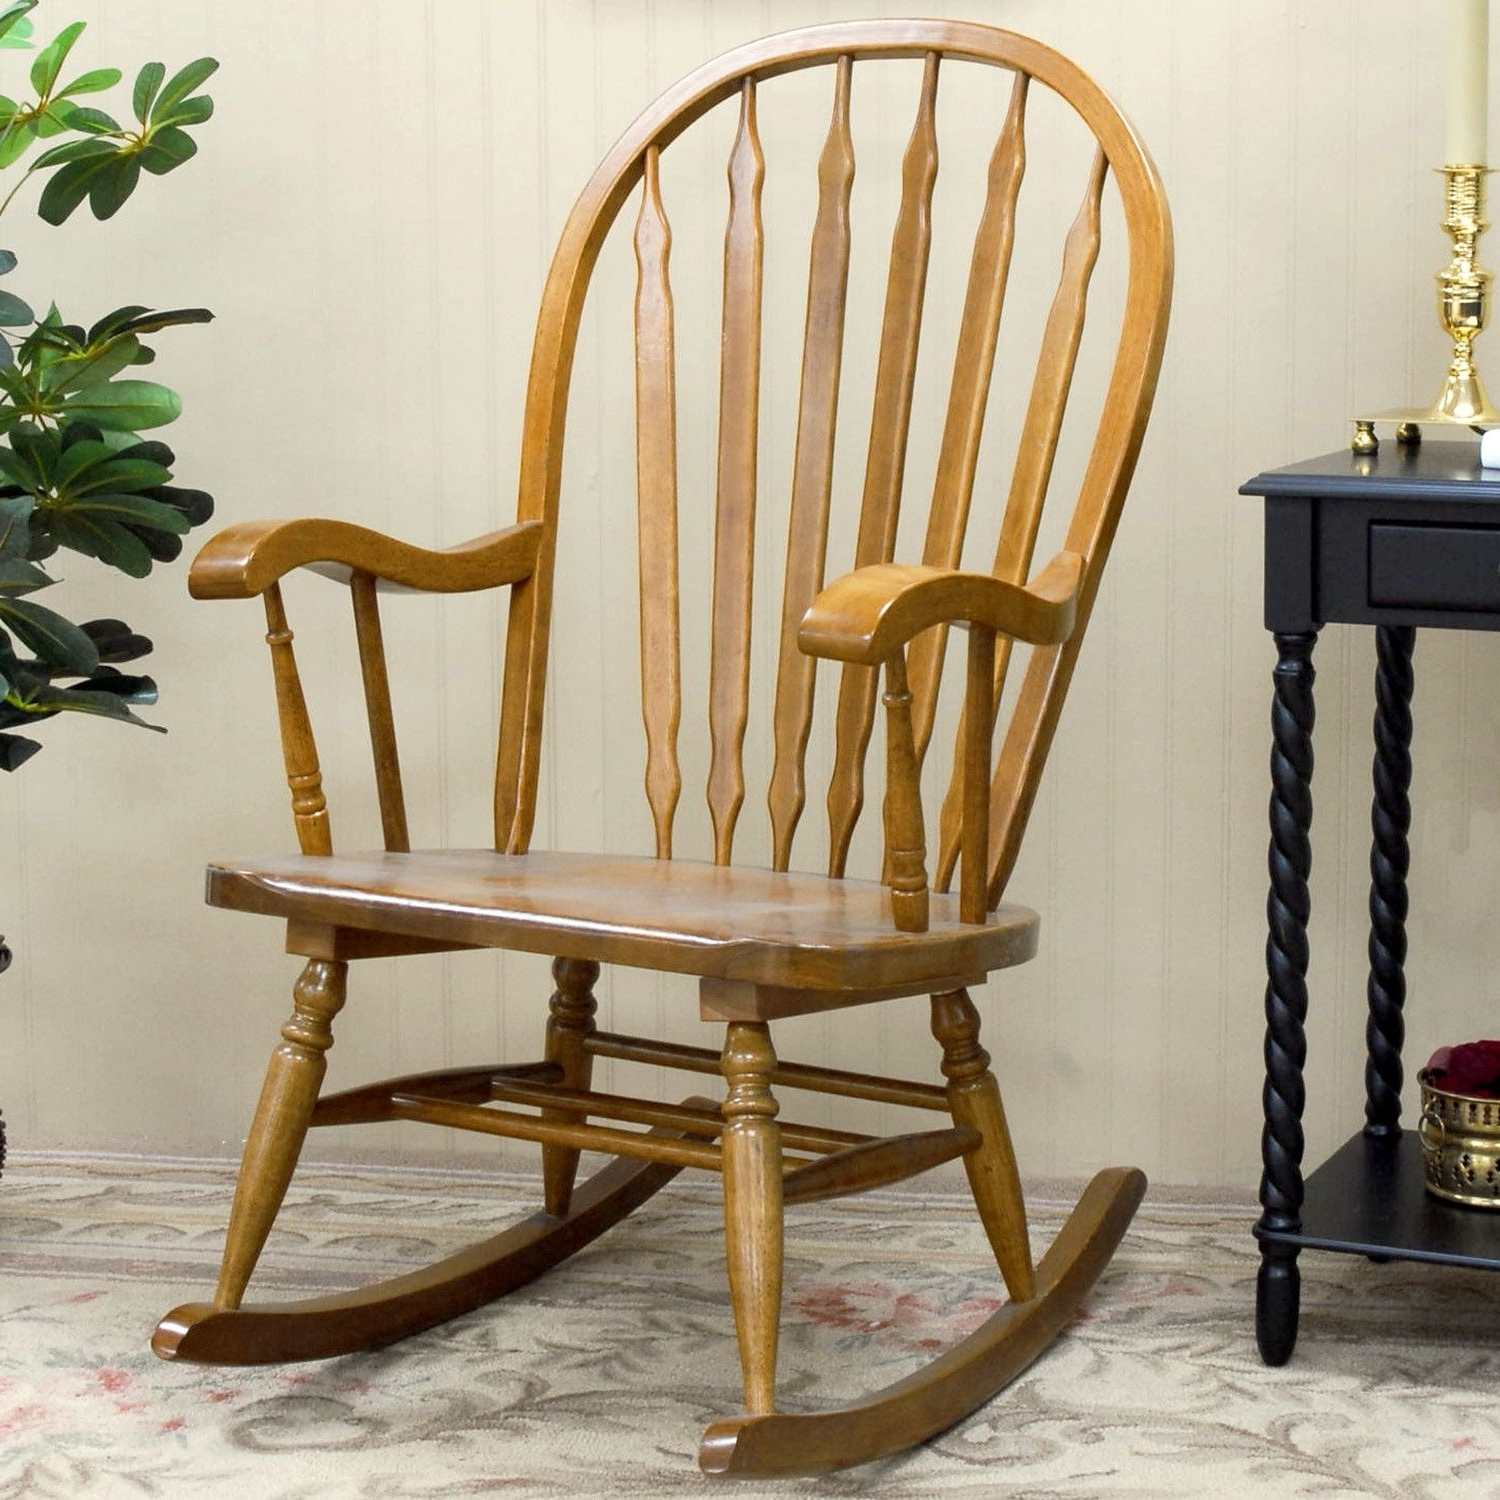 Mural Of Mission Style Rocking Chair: History And Designs In Preferred Rocking Chairs At Wayfair (View 20 of 20)